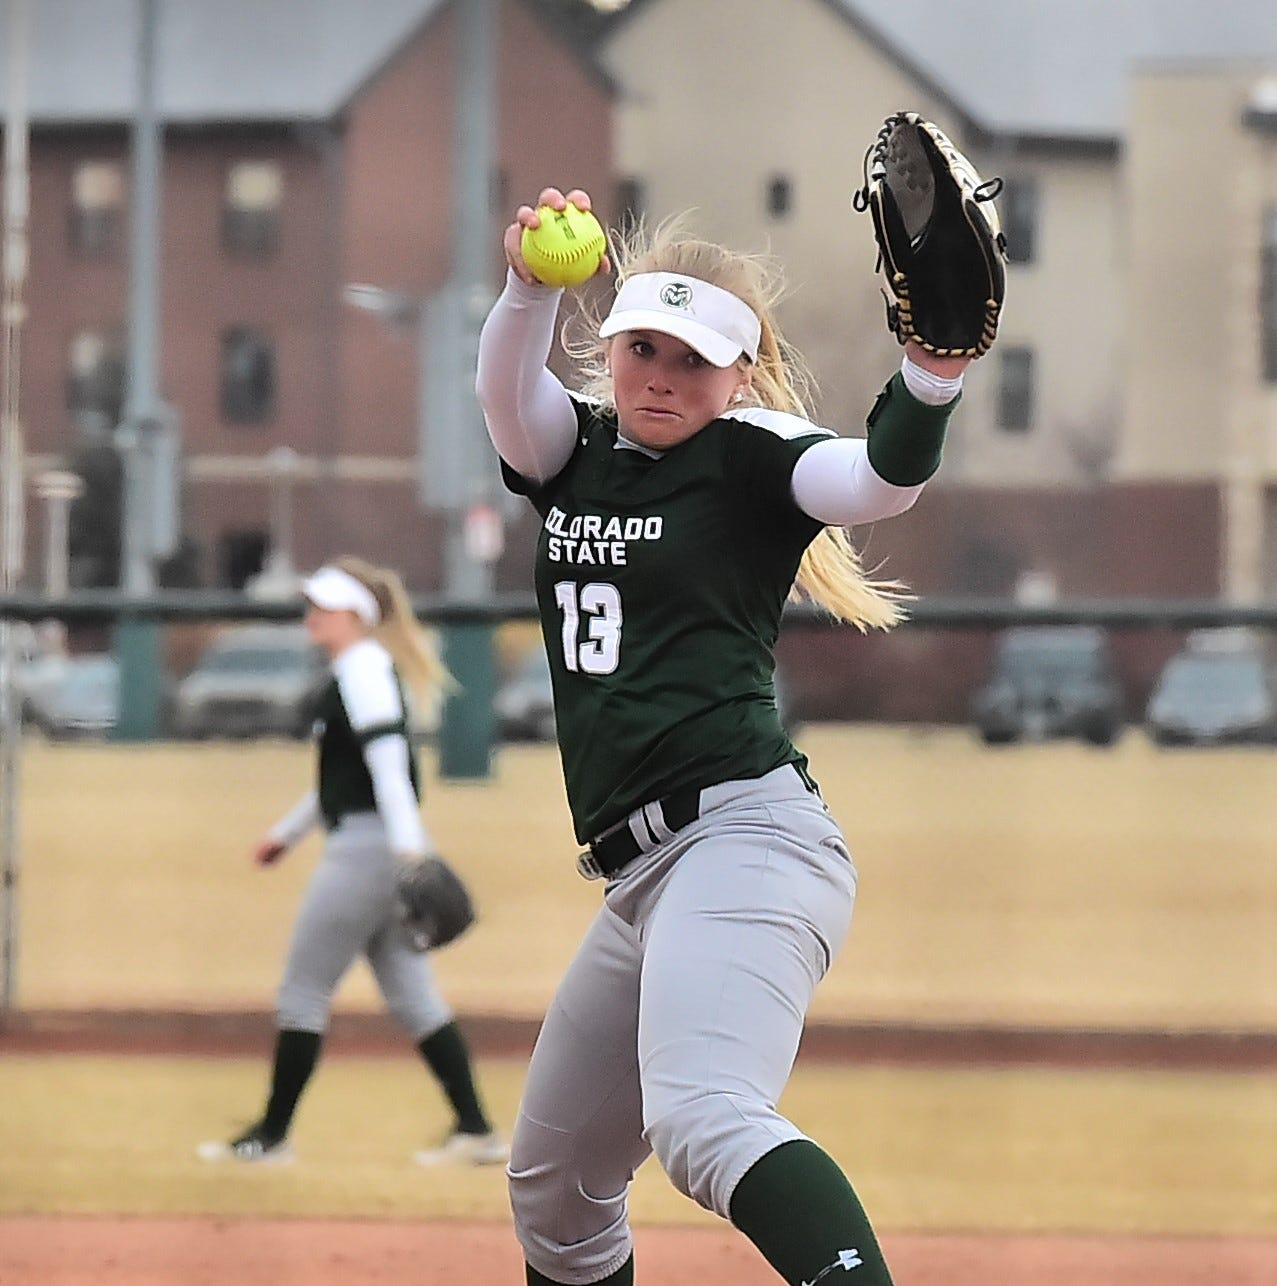 CSU softball is in DNA of pitcher Bridgette Hutton